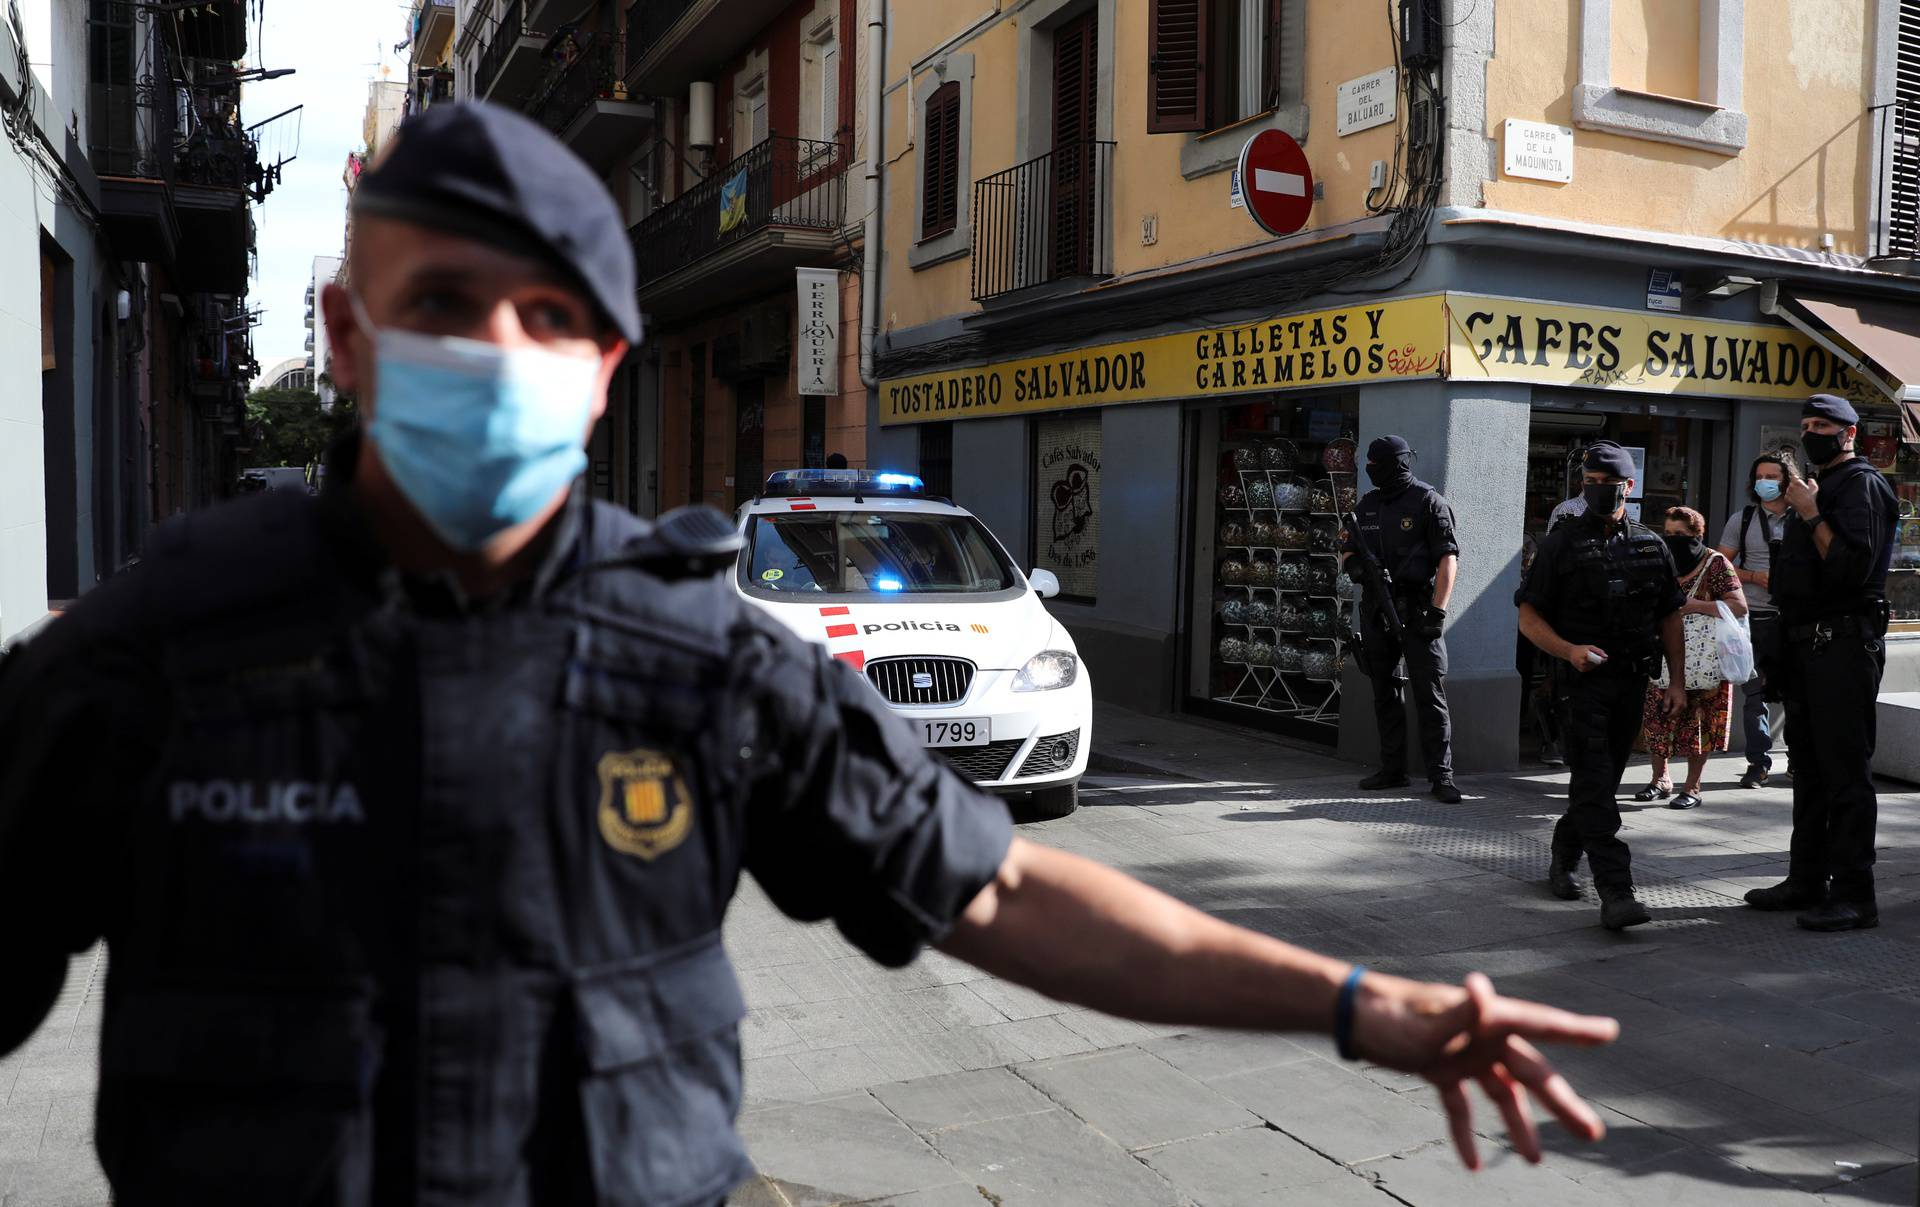 Anti-terrorism operation in Barcelona